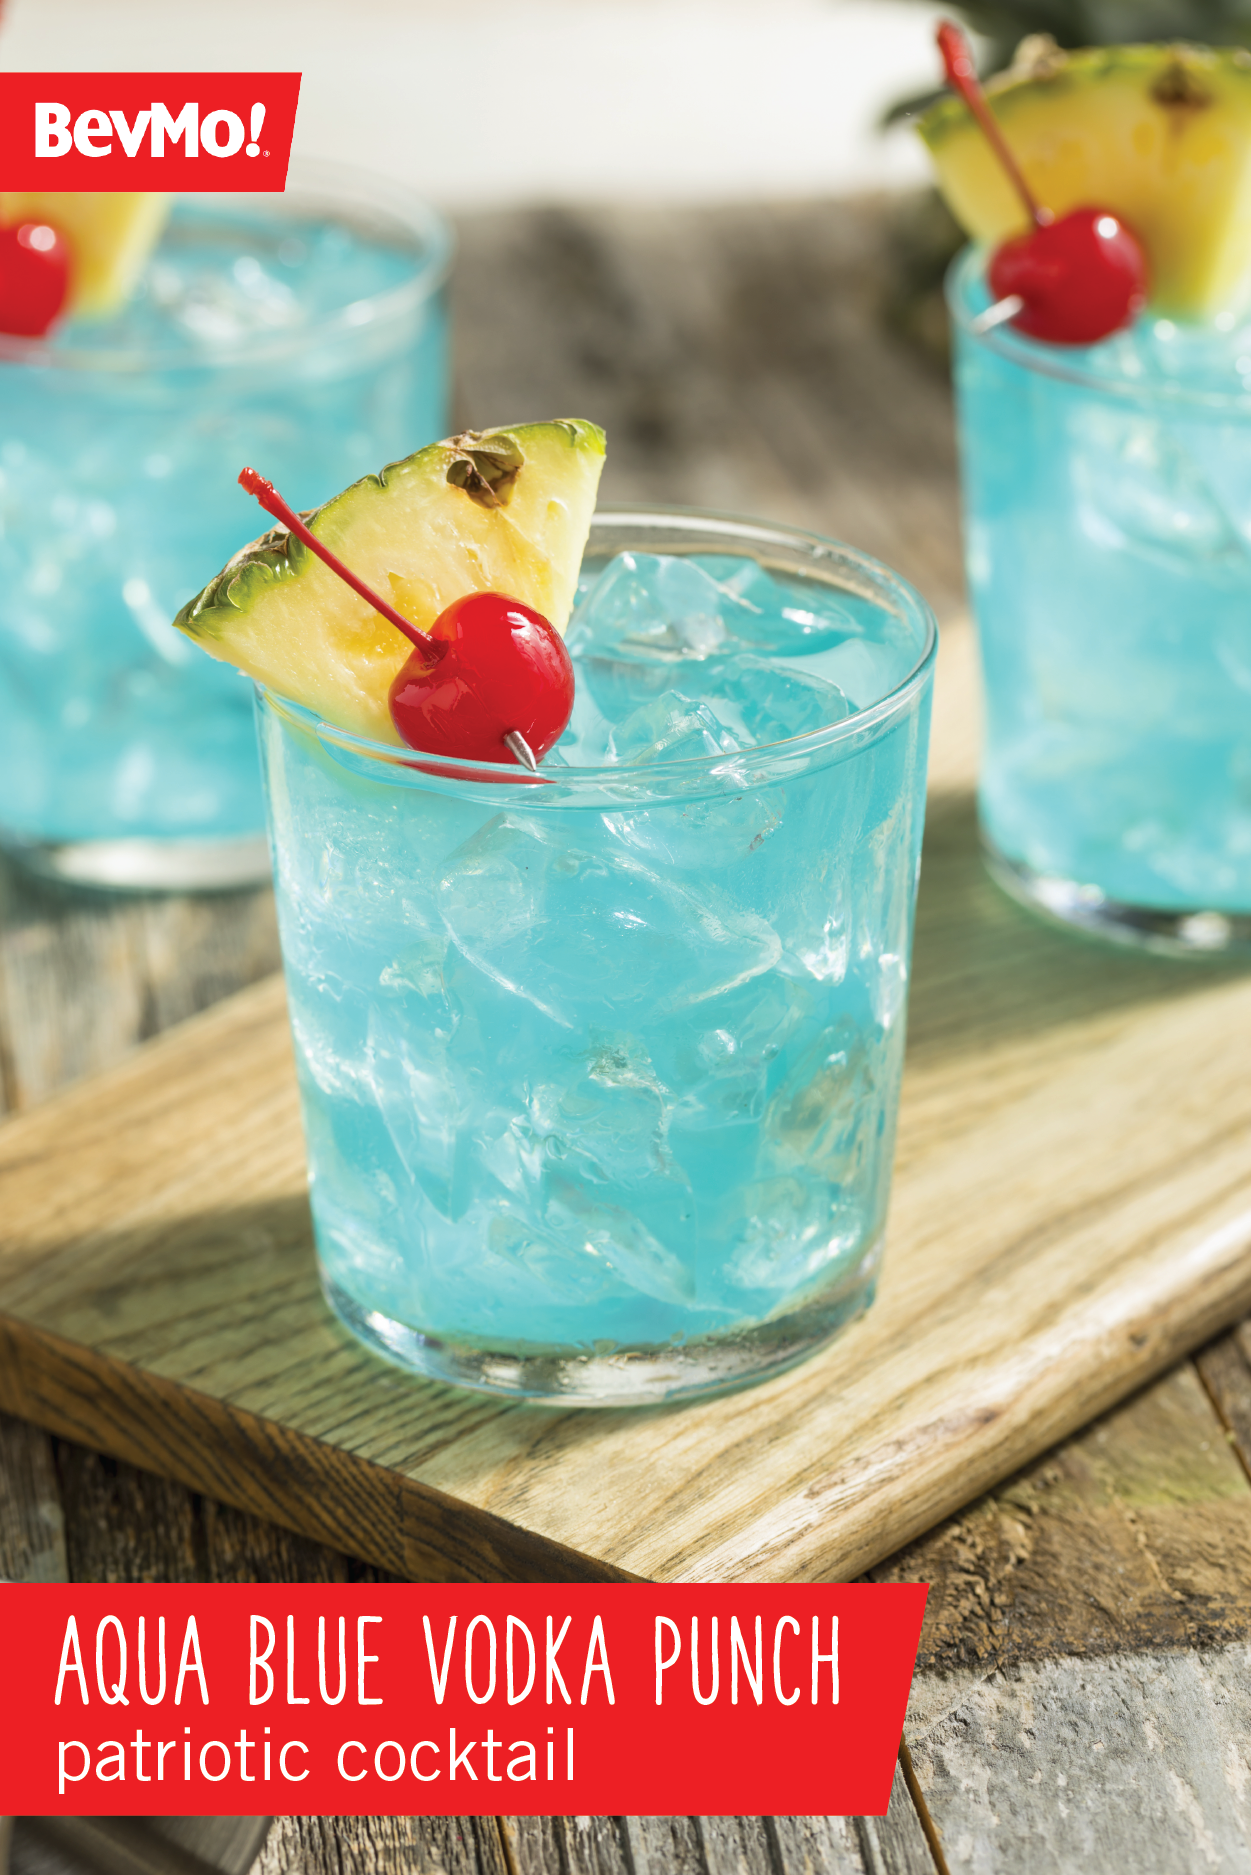 Looking for a delicious summer drink? Check out this Aqua Blue Vodka Punch Patriotic Cocktail recipe from BevMo! With Blue Curaçao, lemonade, and pineapple juice, this fruity beverage couldn't be easier to put together for your 4th of July party. #vodkapunch Looking for a delicious summer drink? Check out this Aqua Blue Vodka Punch Patriotic Cocktail recipe from BevMo! With Blue Curaçao, lemonade, and pineapple juice, this fruity beverage couldn't be easier to put together for your 4th of #vodkapunch